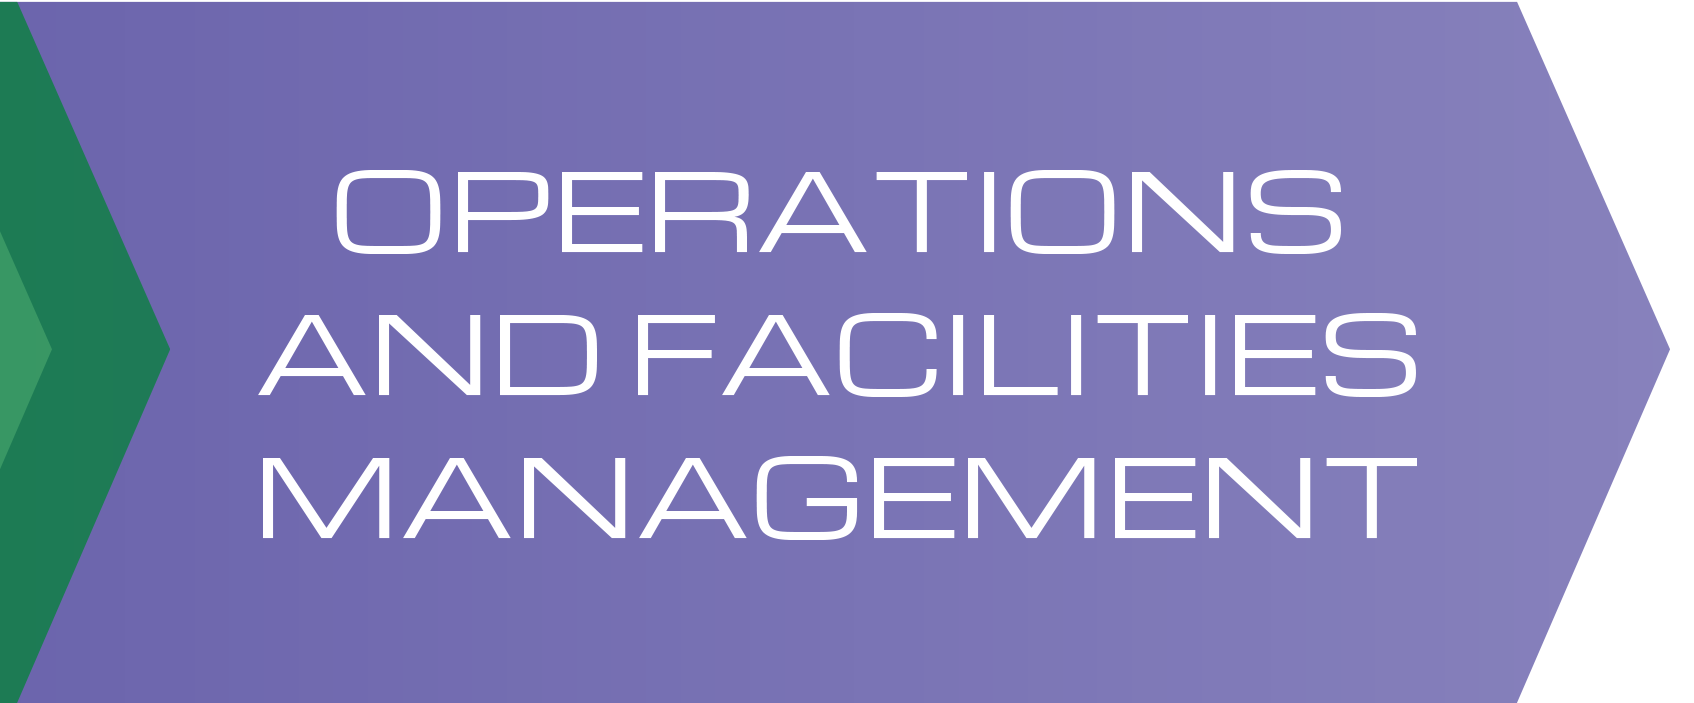 Operations And Facilities Management